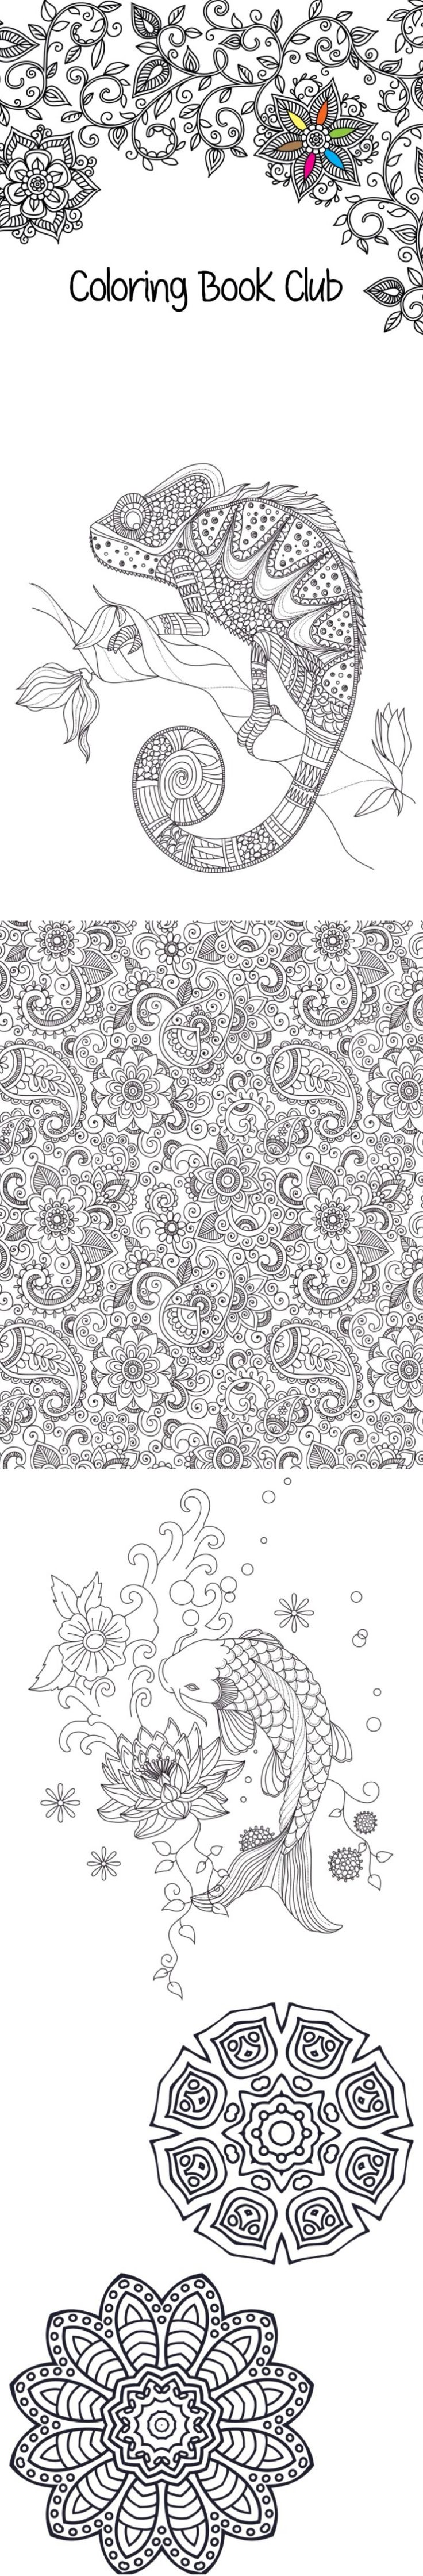 Coloring sheets perfect as a stress reliever. Take a break, color and enjoy! These designs are free for download.